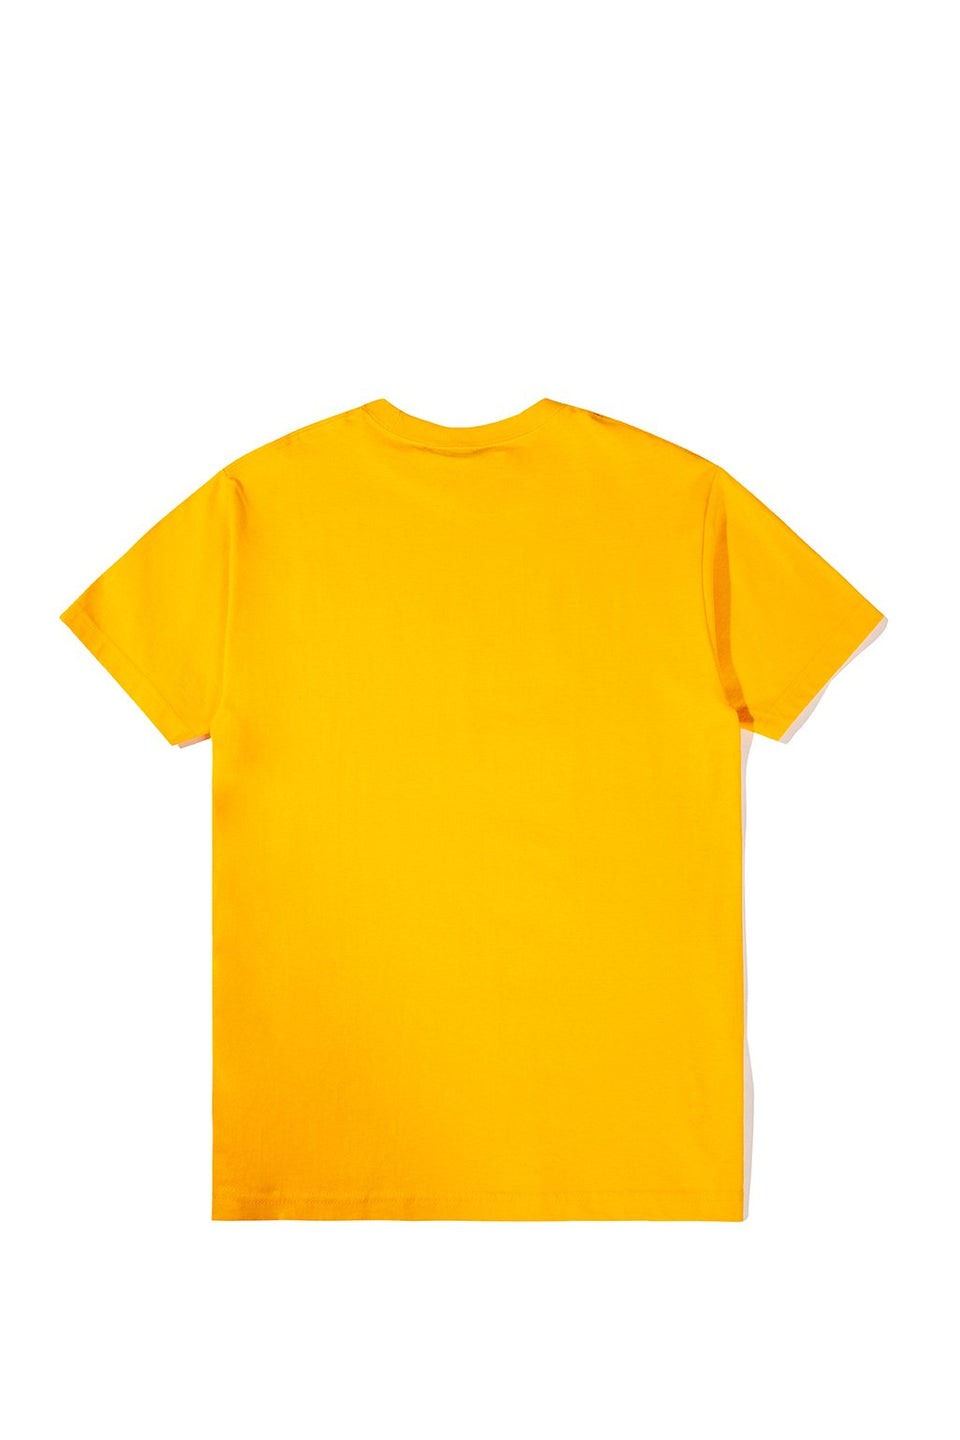 The Hundreds Jams T-Shirt TOPS Gold